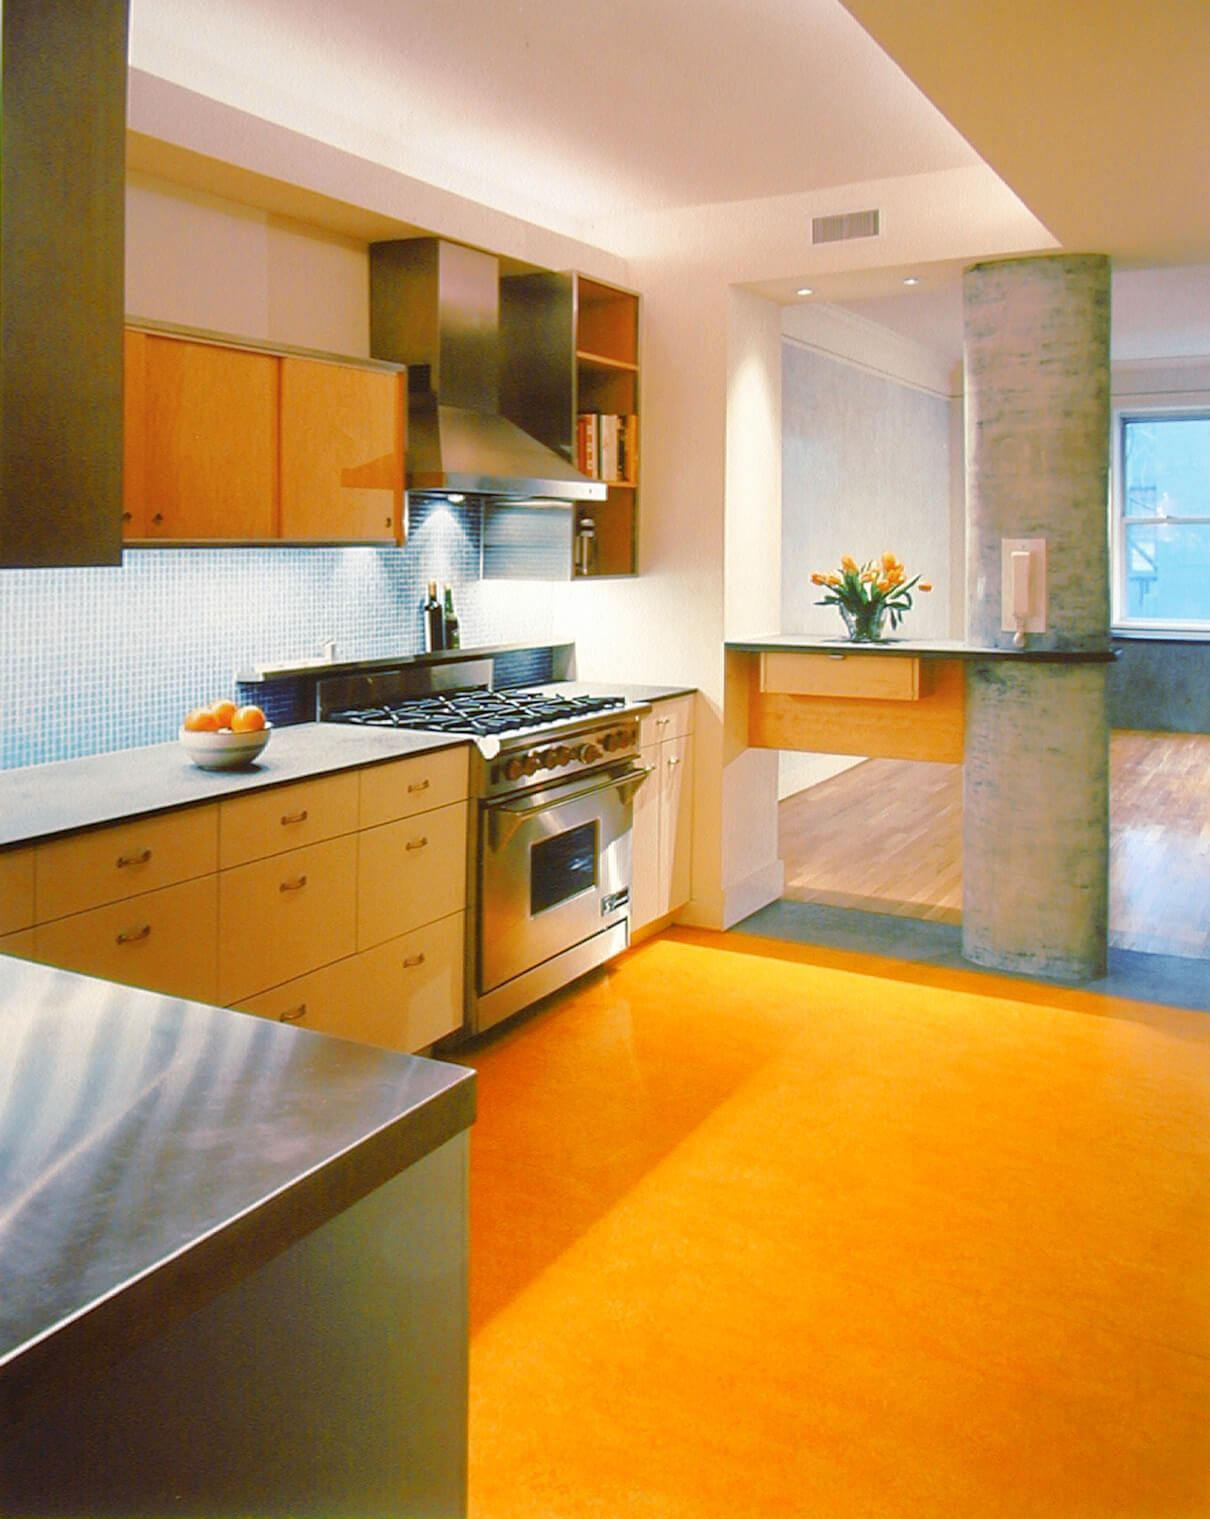 Upper West Side apartment kitchen